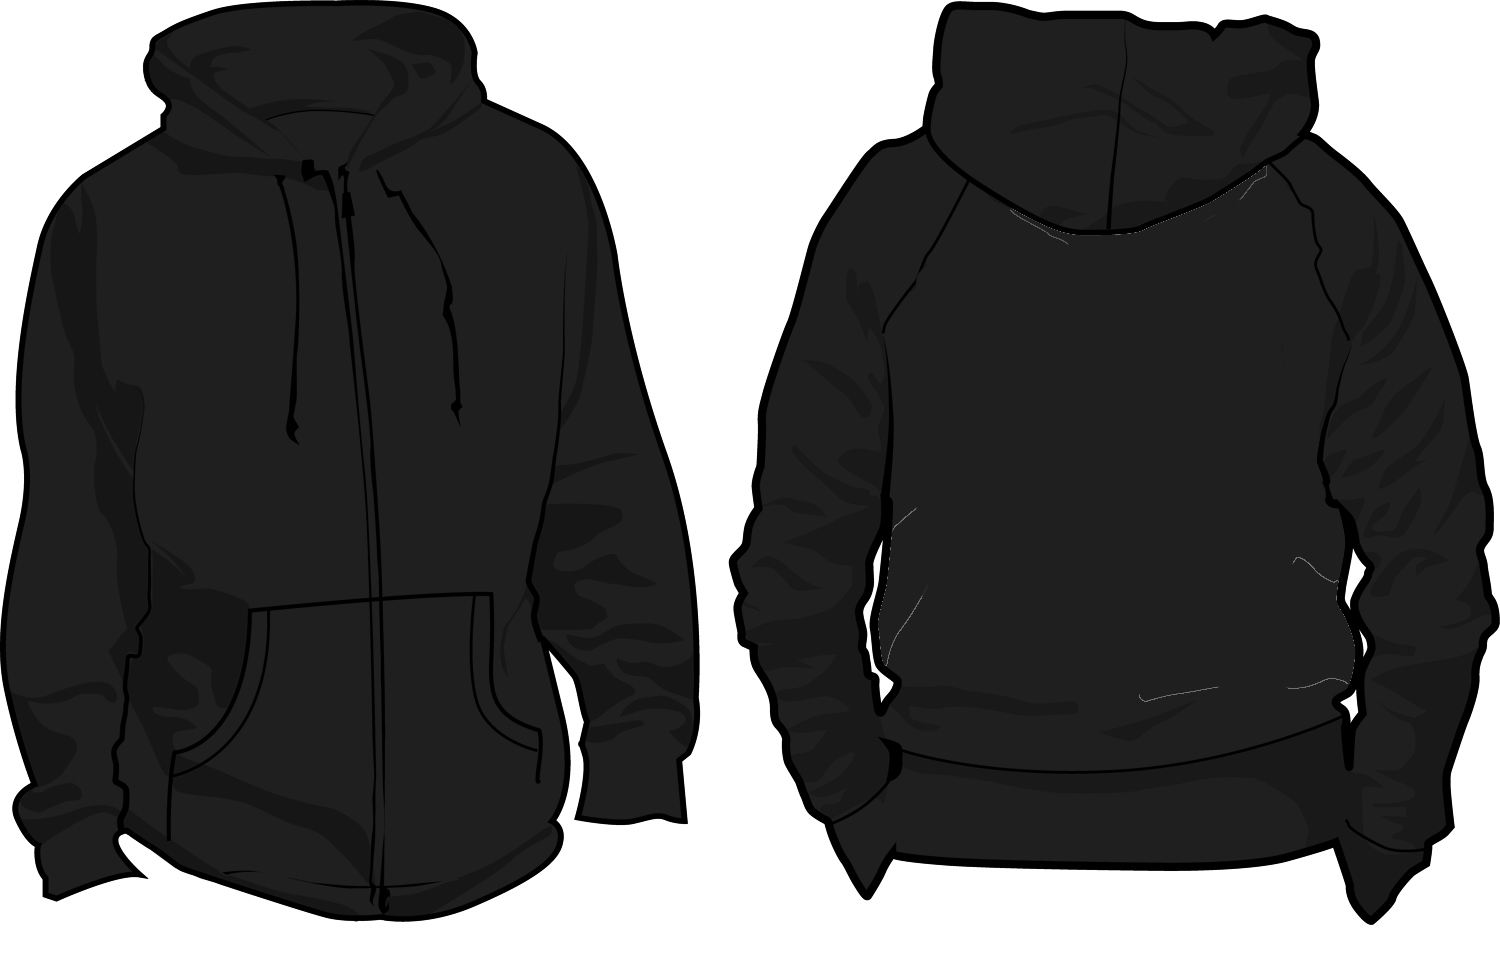 Hoodie Template Front and Back